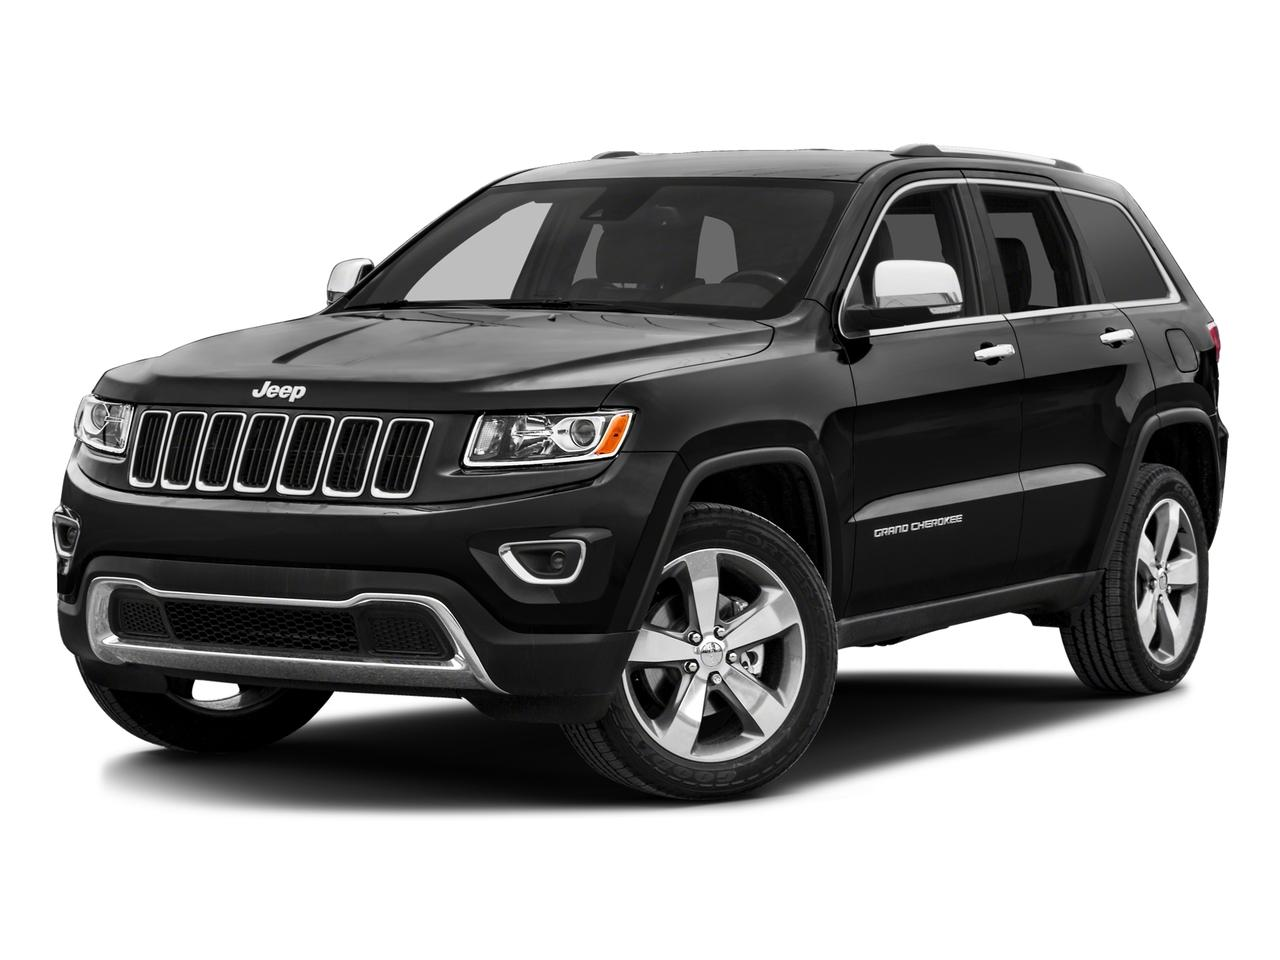 2016 Jeep Grand Cherokee Vehicle Photo in Oklahoma City, OK 73162